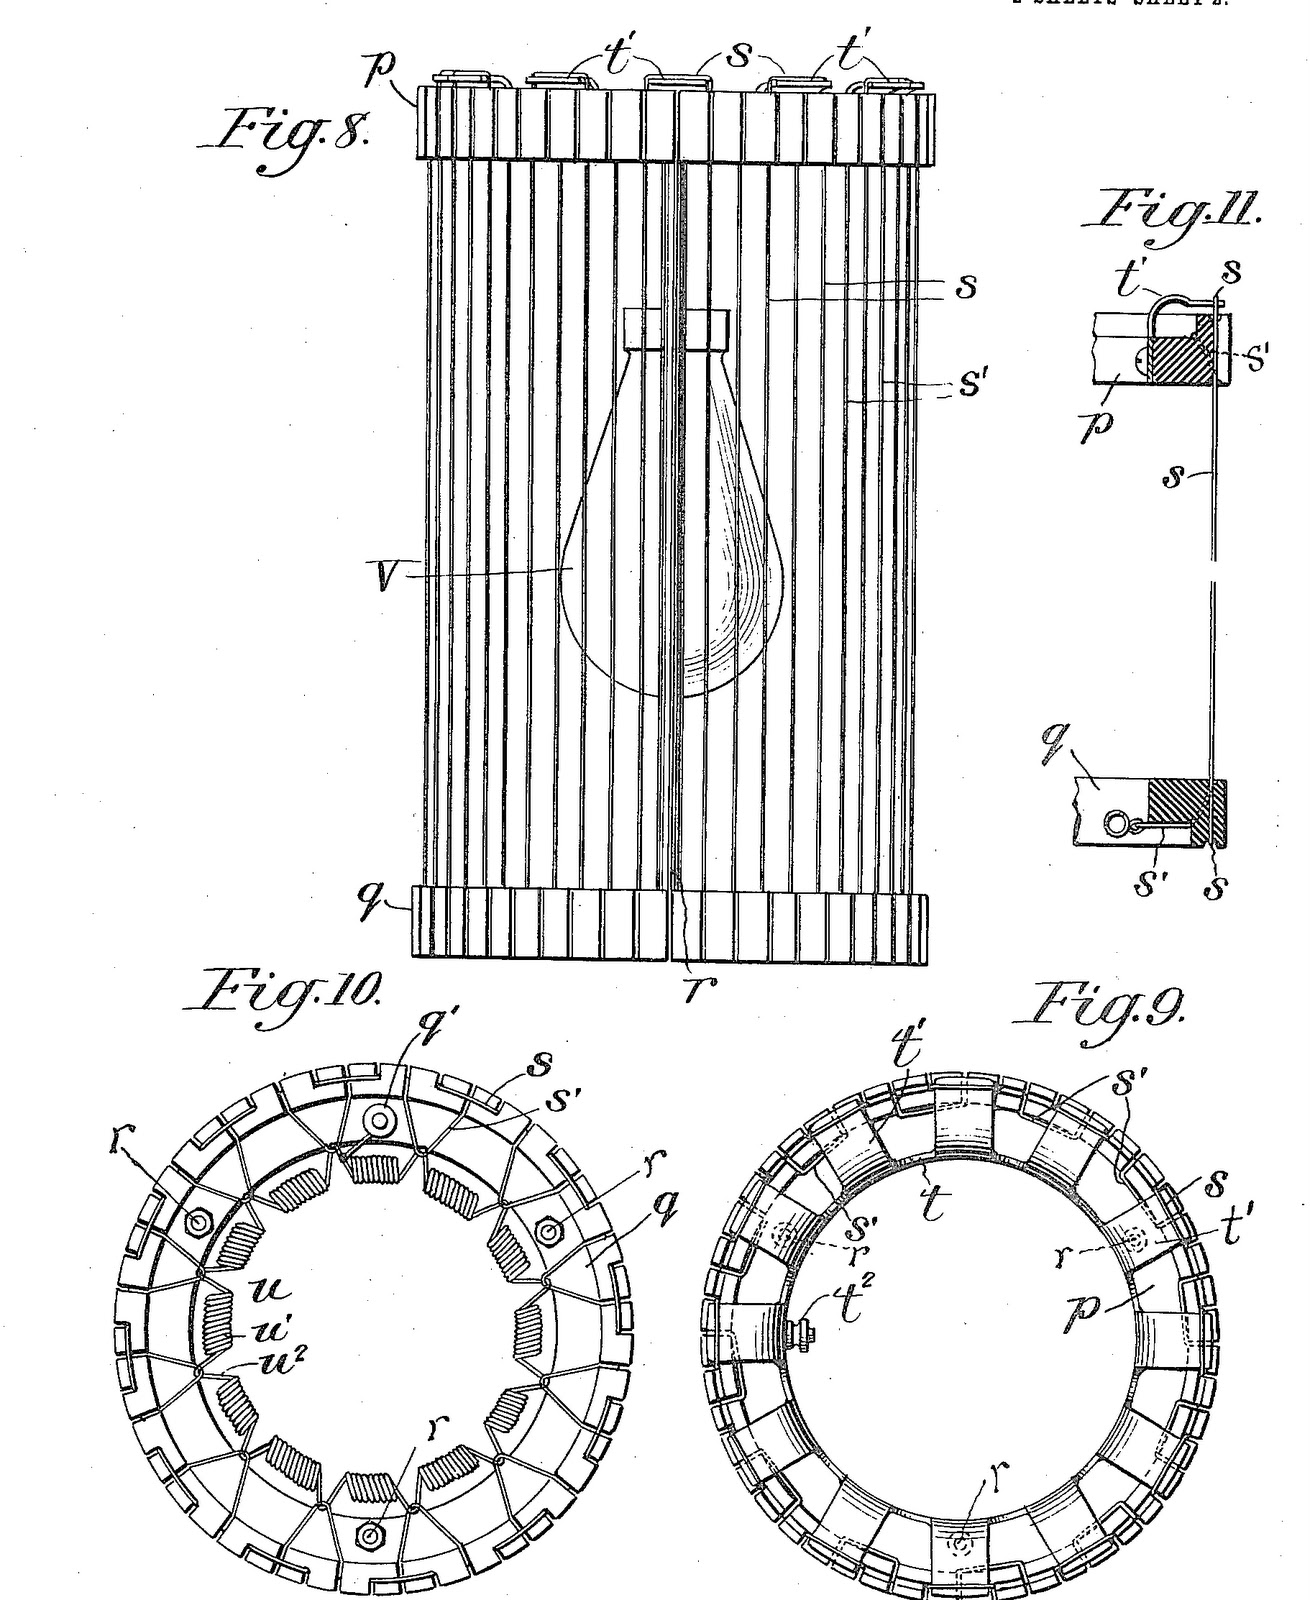 hight resolution of the charge on the wires was supplied using an induction coil and a battery the